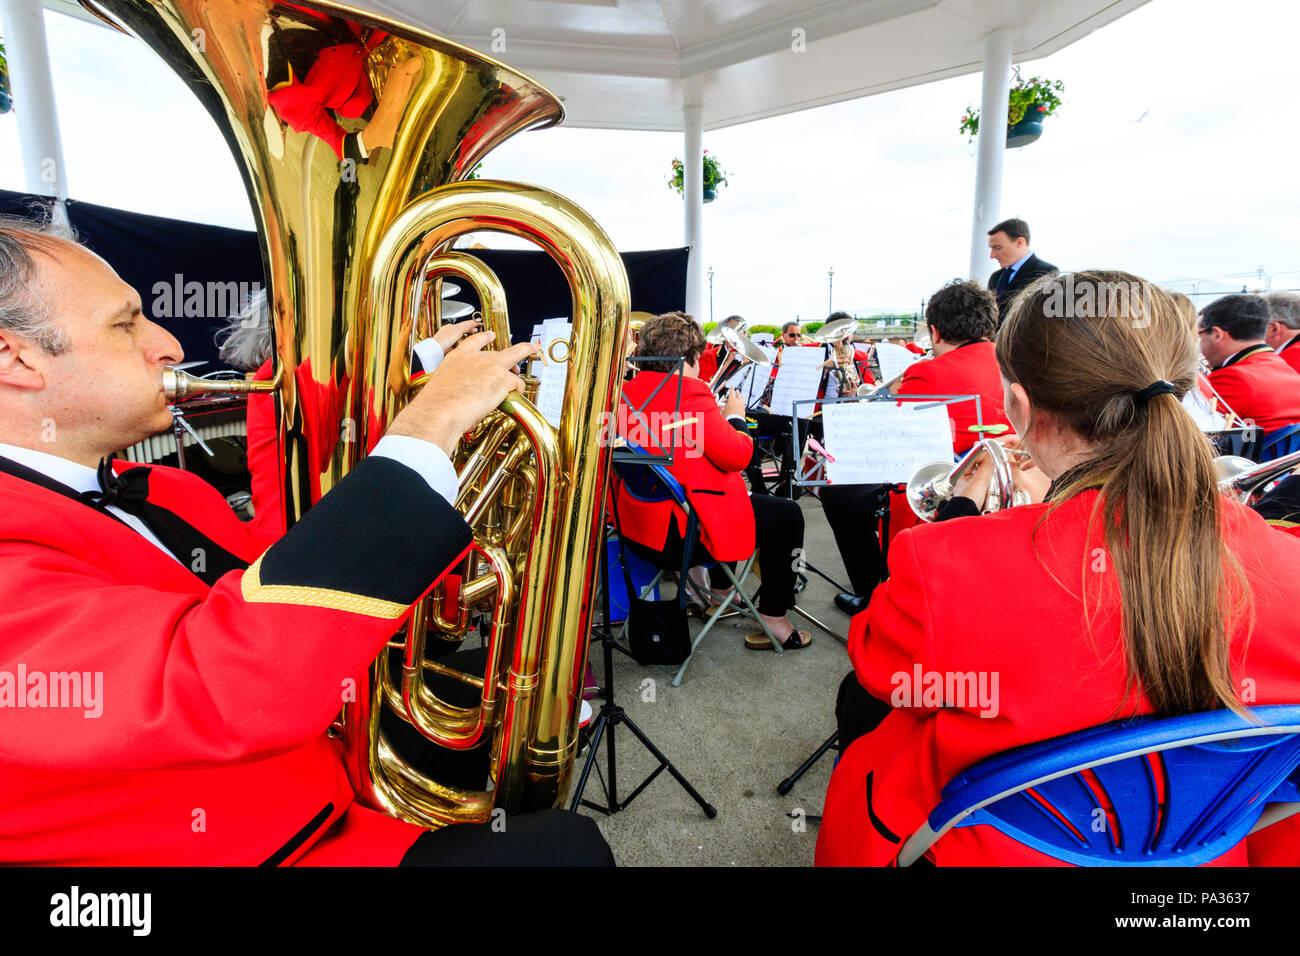 Salvation Army band performing on summer's day at the bandstand on Broadstairs seafront. Over the shoulder view from back of orchestra. Stock Photo